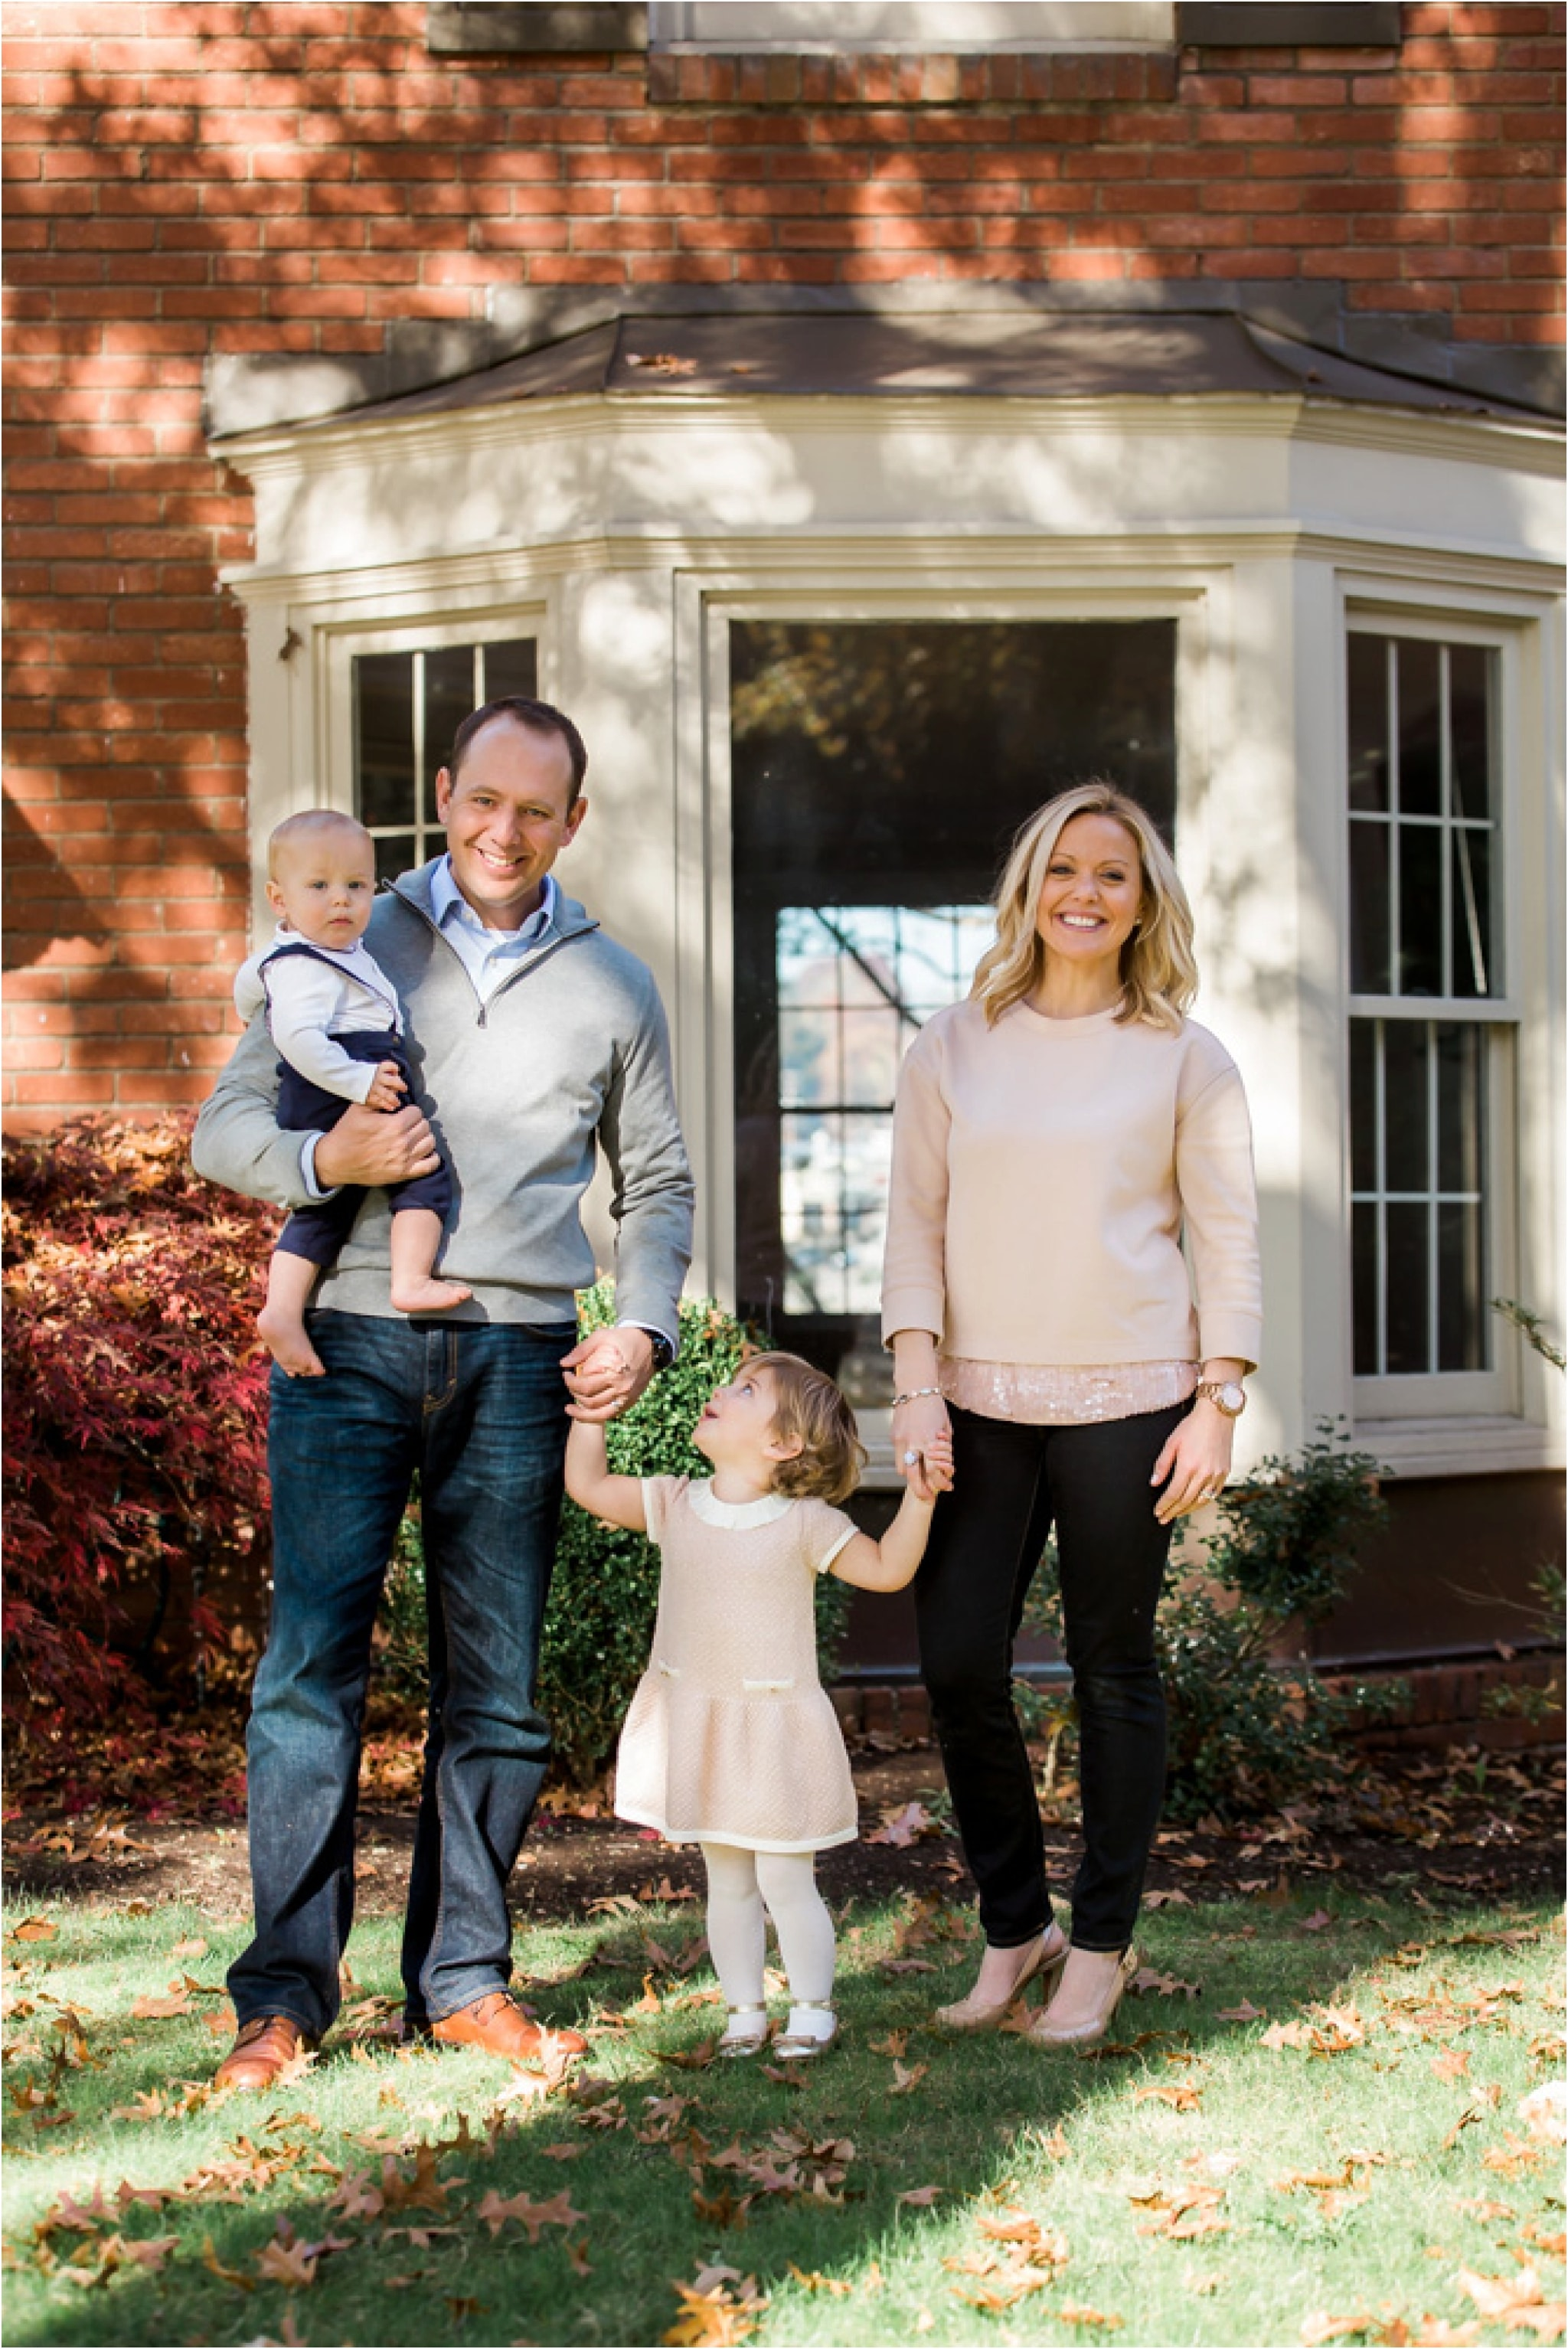 Pittsburgh Family Photos - Lifestyle